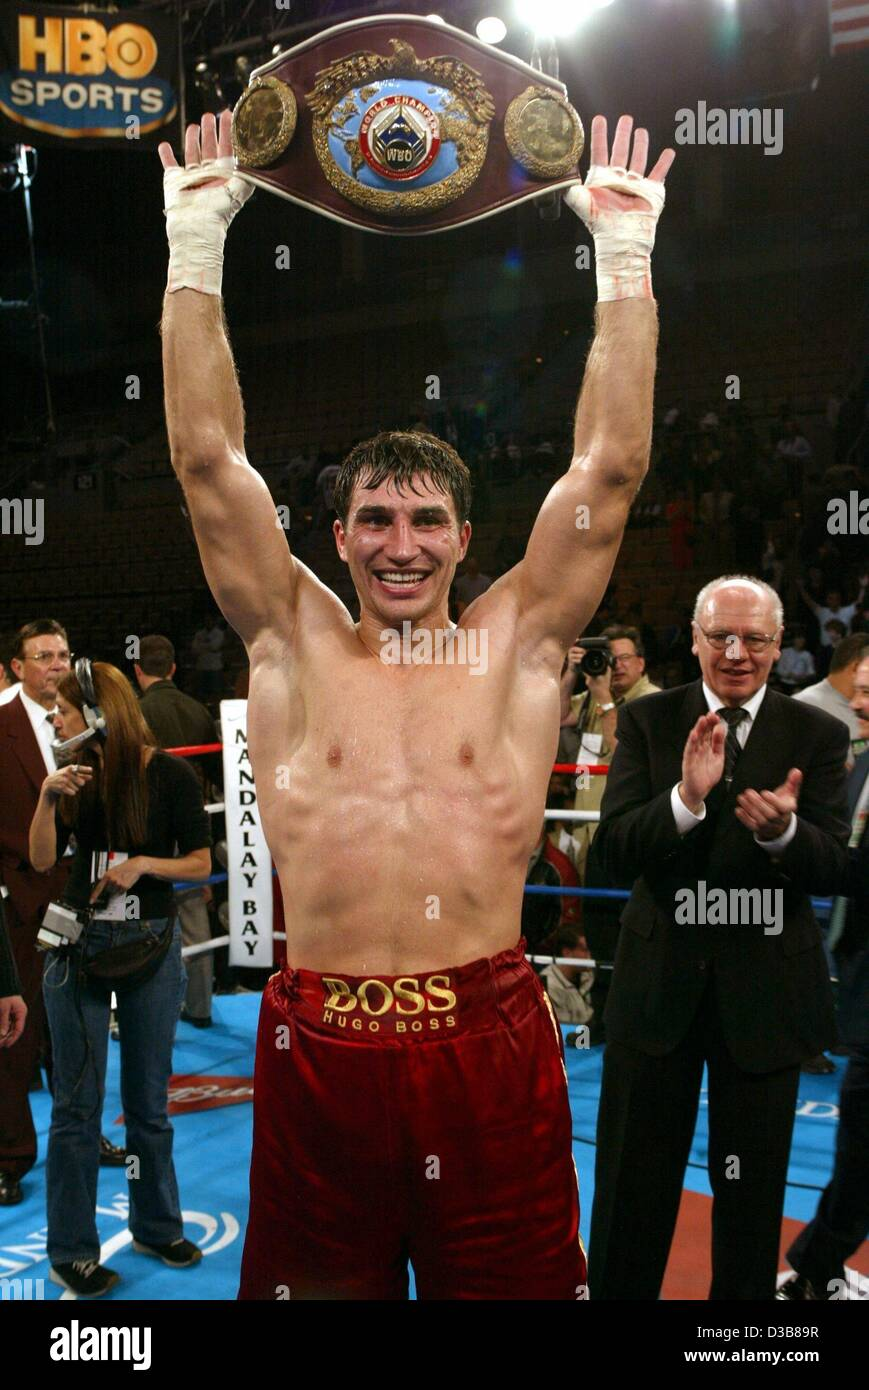 The heavyweight boxer Wladimir Klitschko shortly after winning his WBO title fight vs. the US boxer Jameel McCline - Stock Image